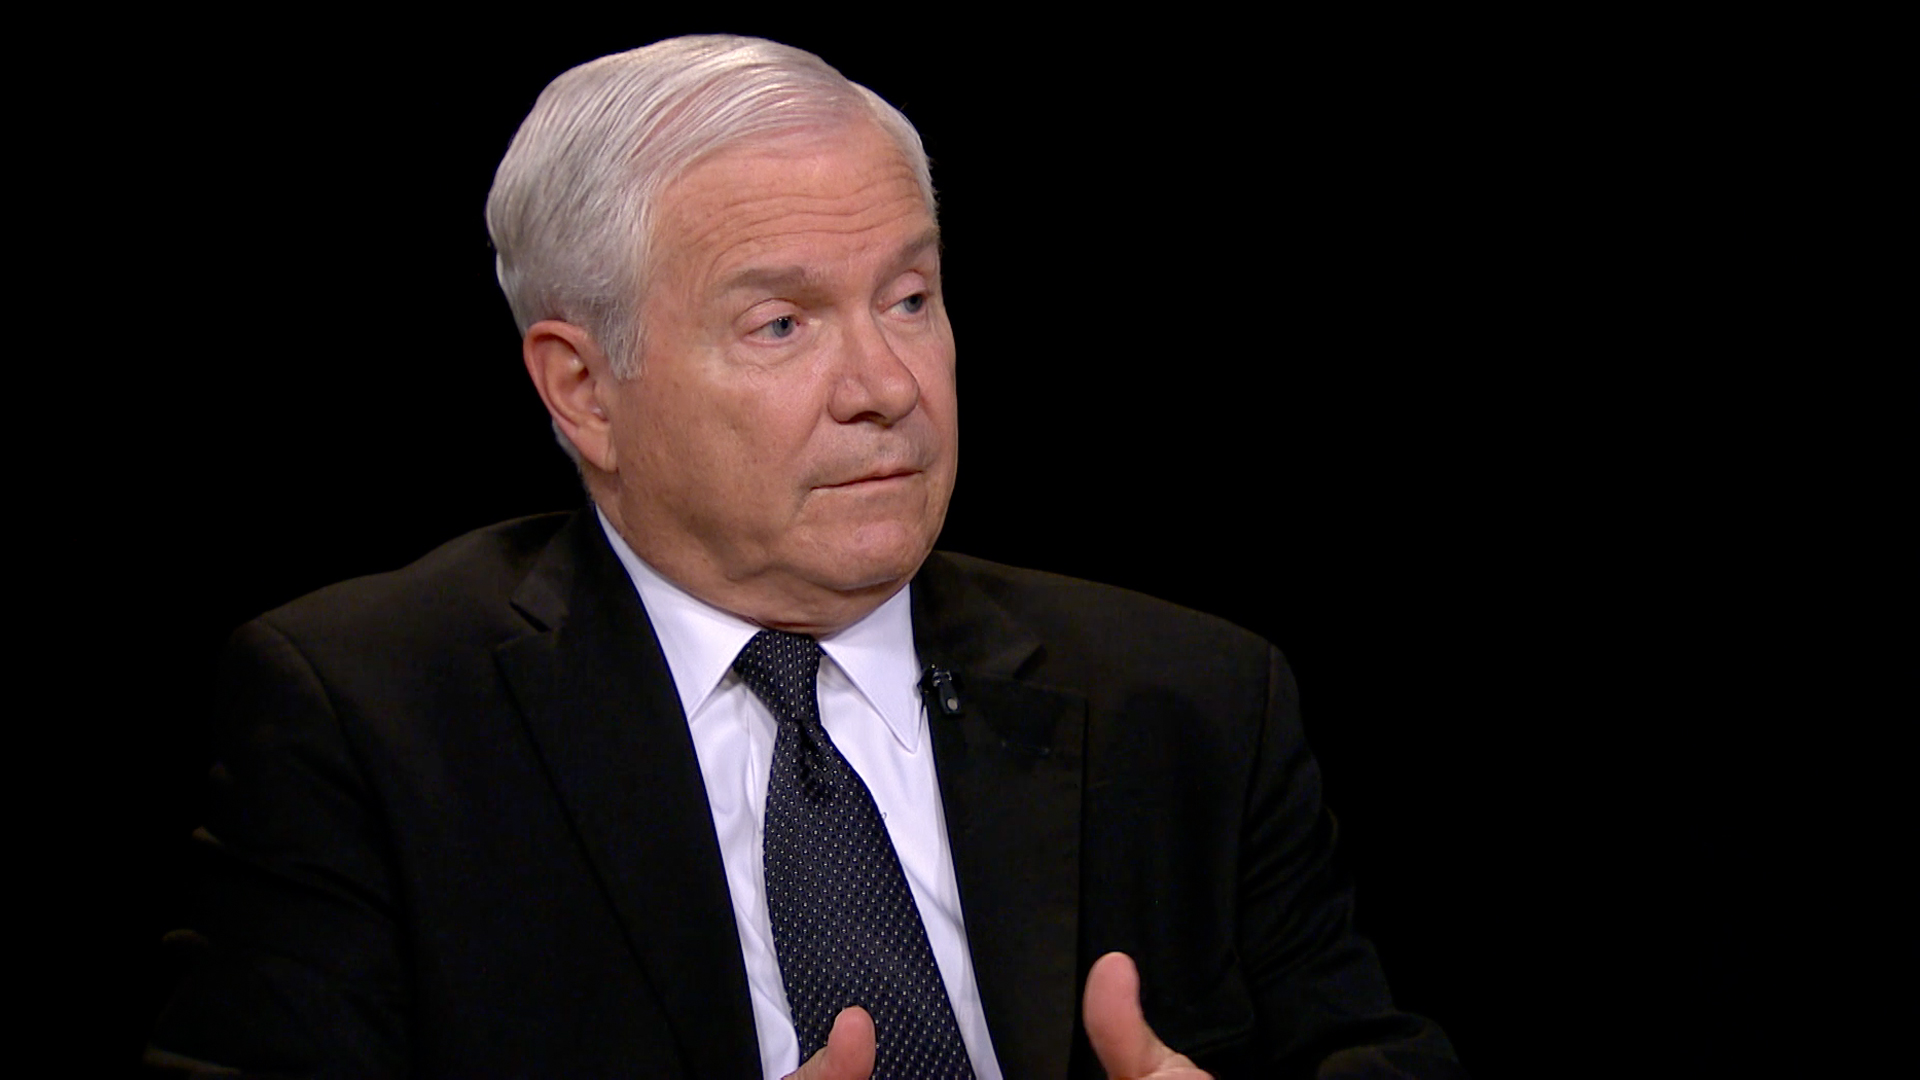 Robert Gates on ISIS and Iraq